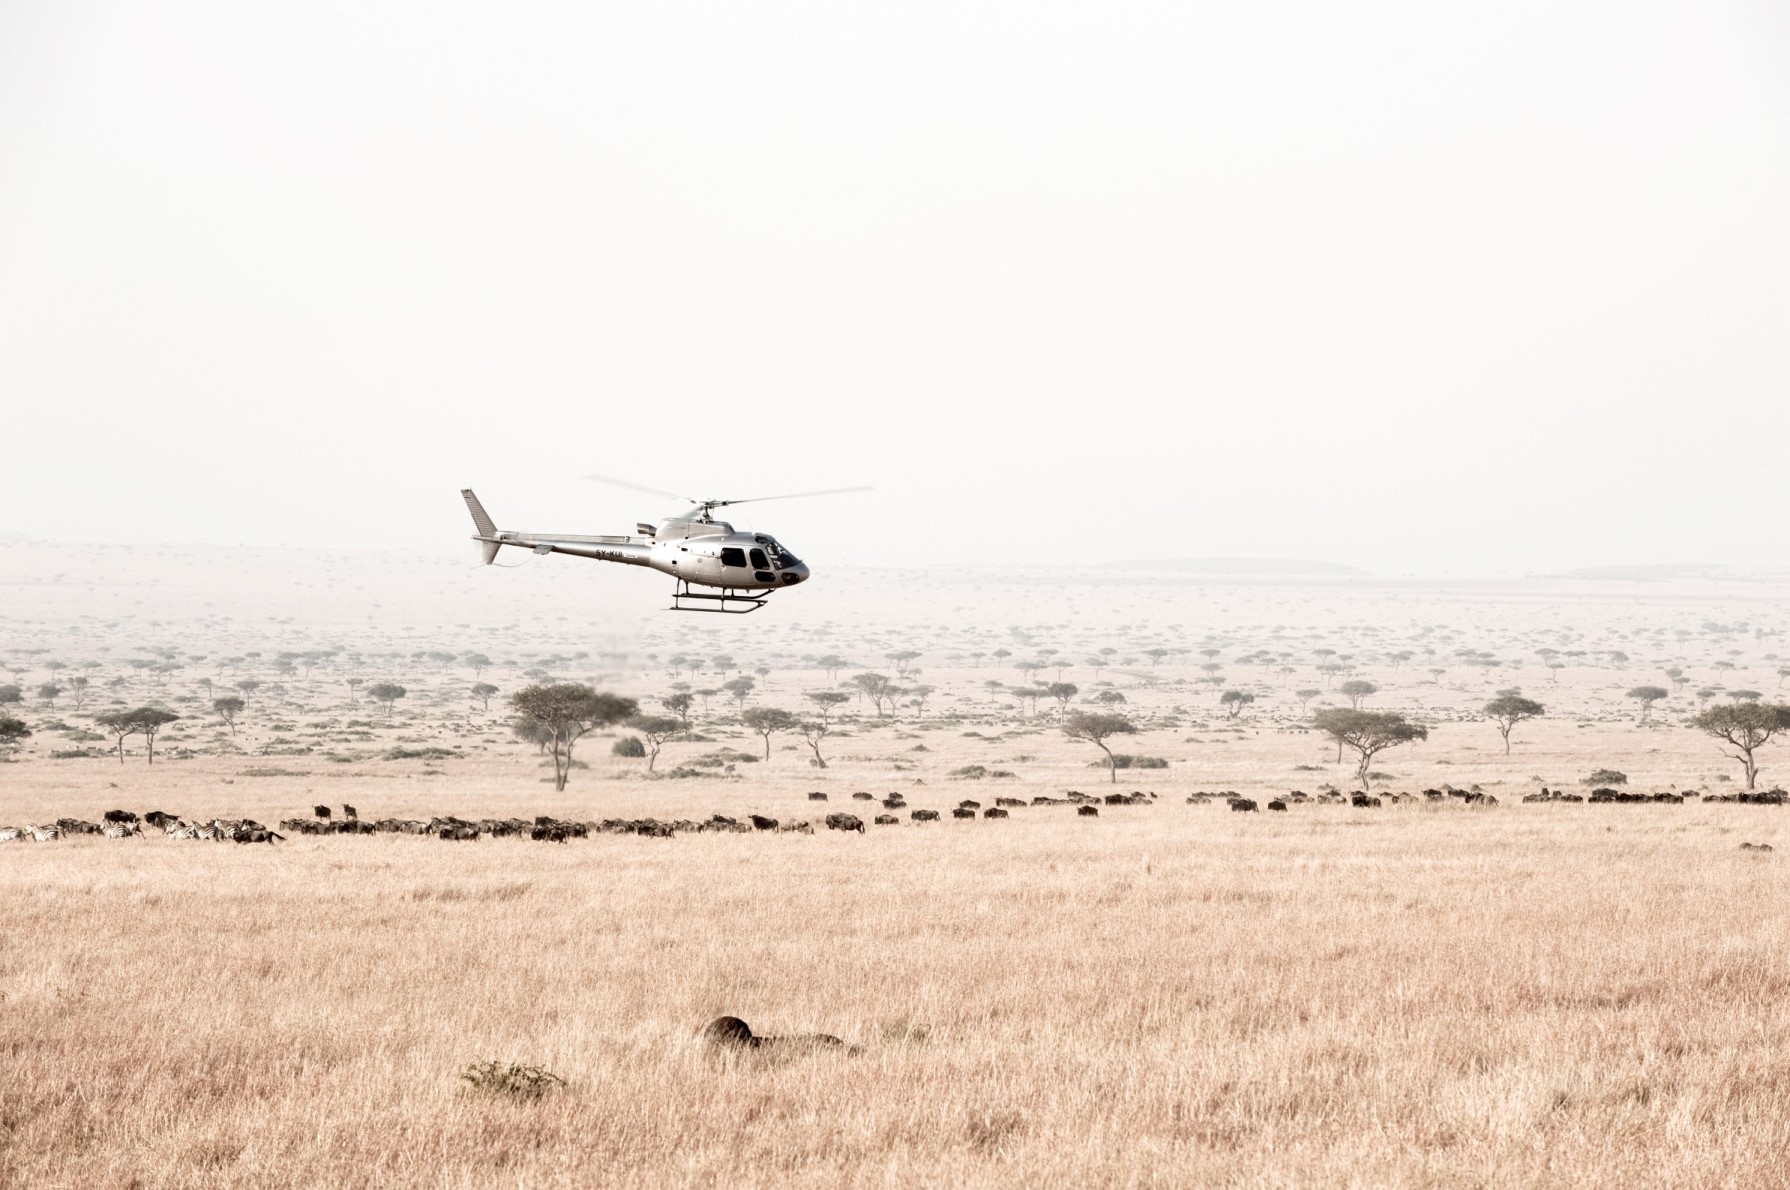 Kenya Scenic Helicopter Flight 1 Day Safaris | Helicopter